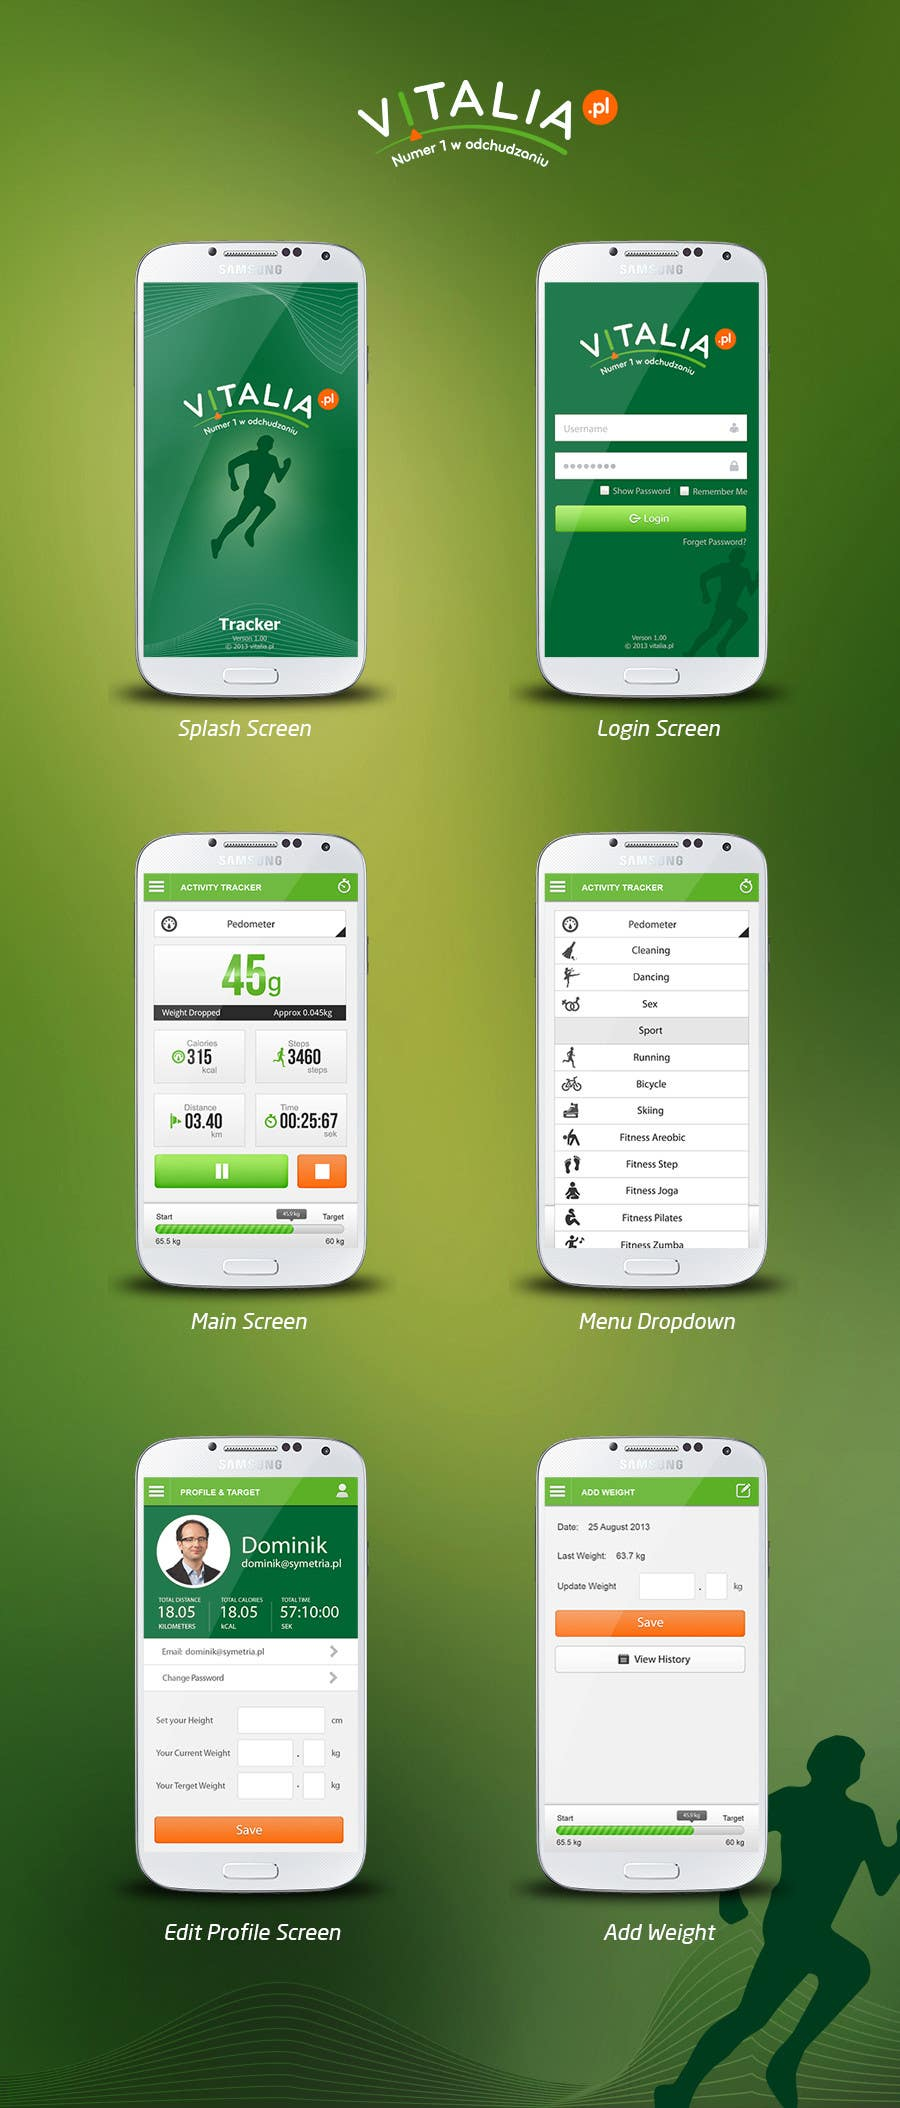 "#150 for Design for mobile app ""Vitalia tracker"" (design only) by JustLogoz"